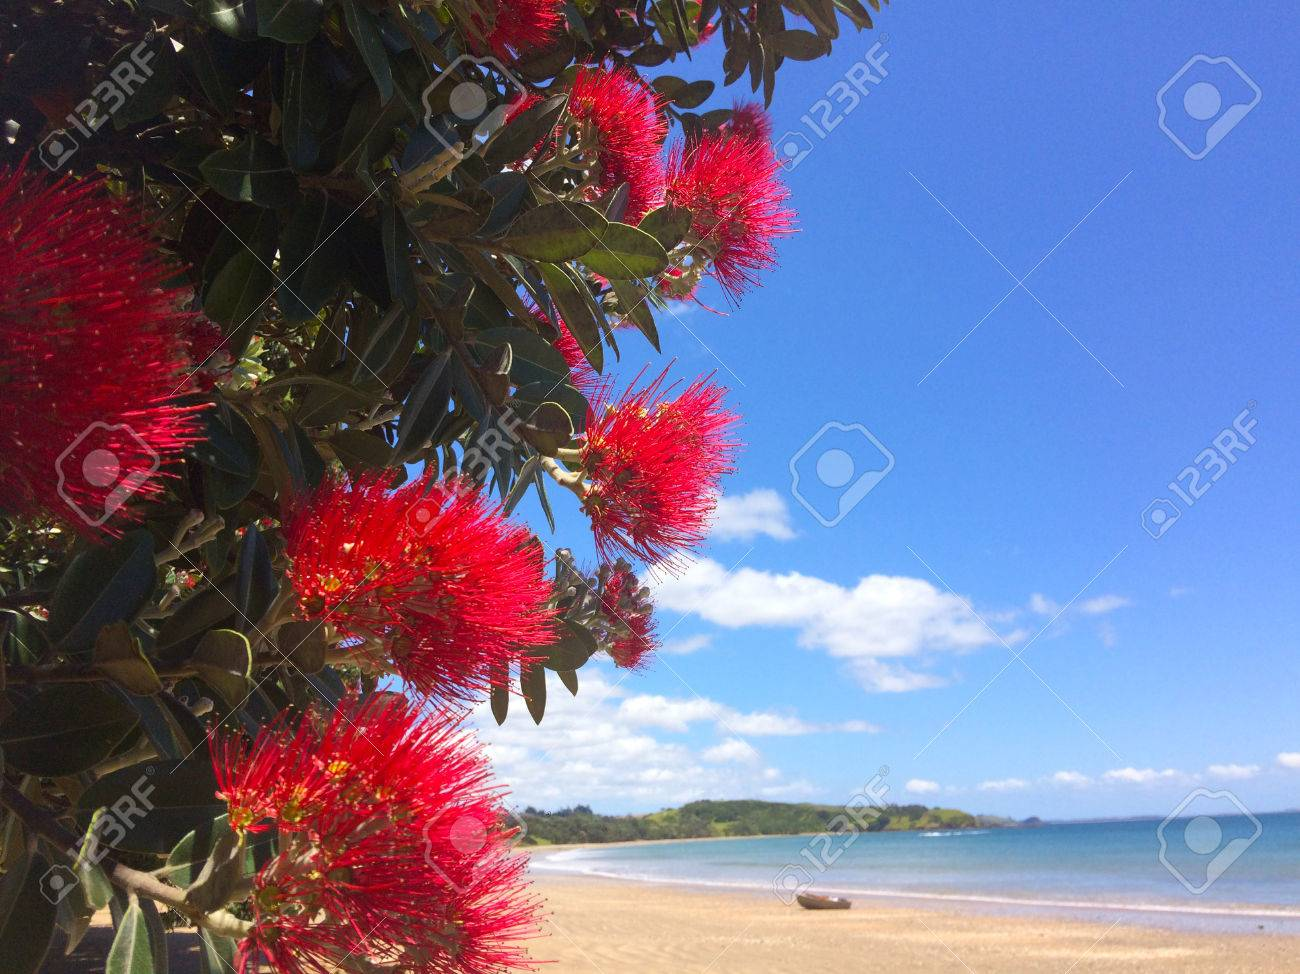 Pohutukawa red flowers blossom on the month of December over a sandy beach with a small fishing boat doubtless bay New Zealand. - 49925421